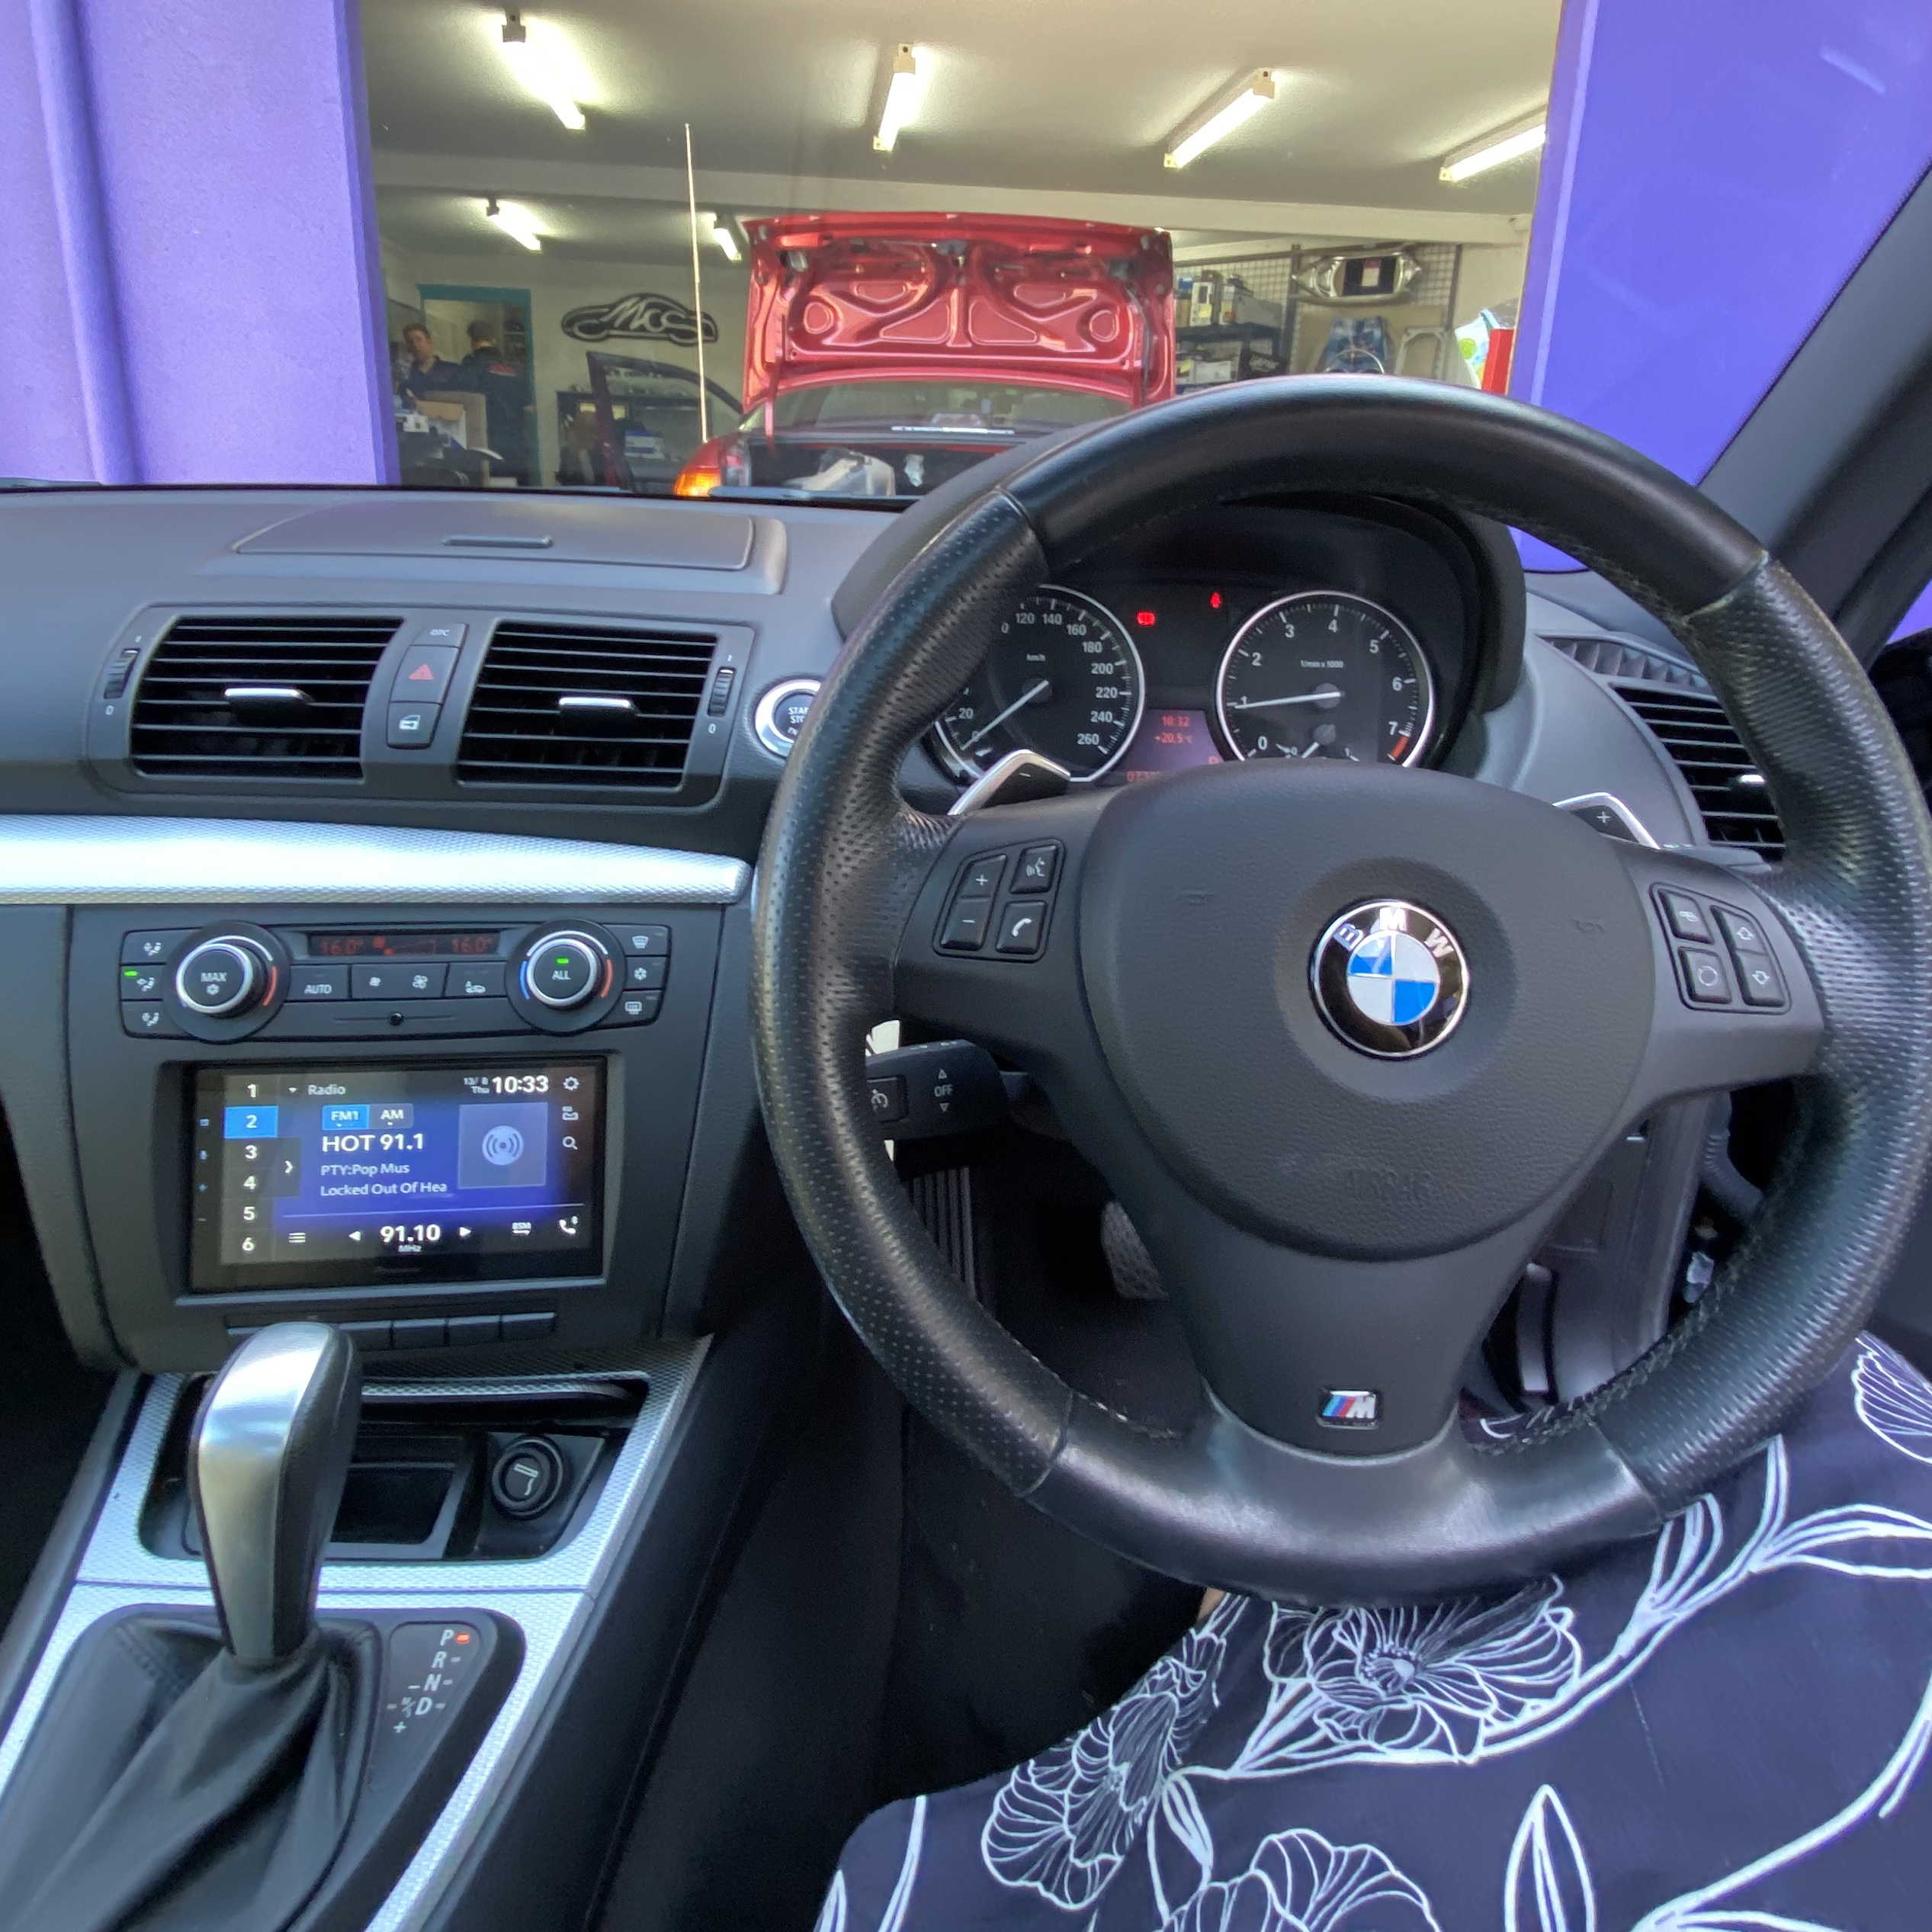 BMW 1 Series Stereo Upgrade